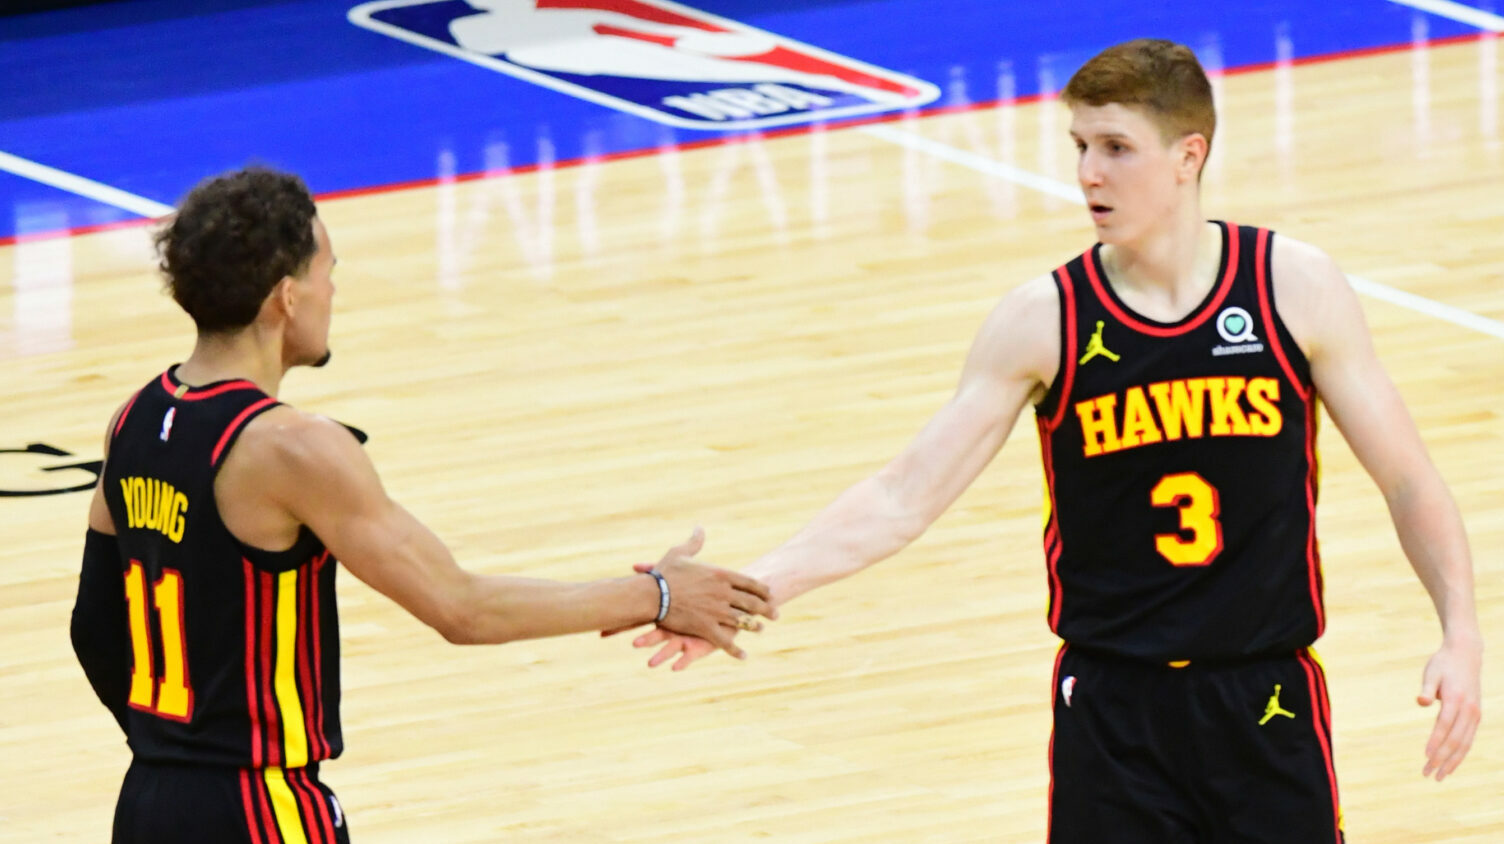 Hawks eliminate top-seed Sixers in Game 7 thriller